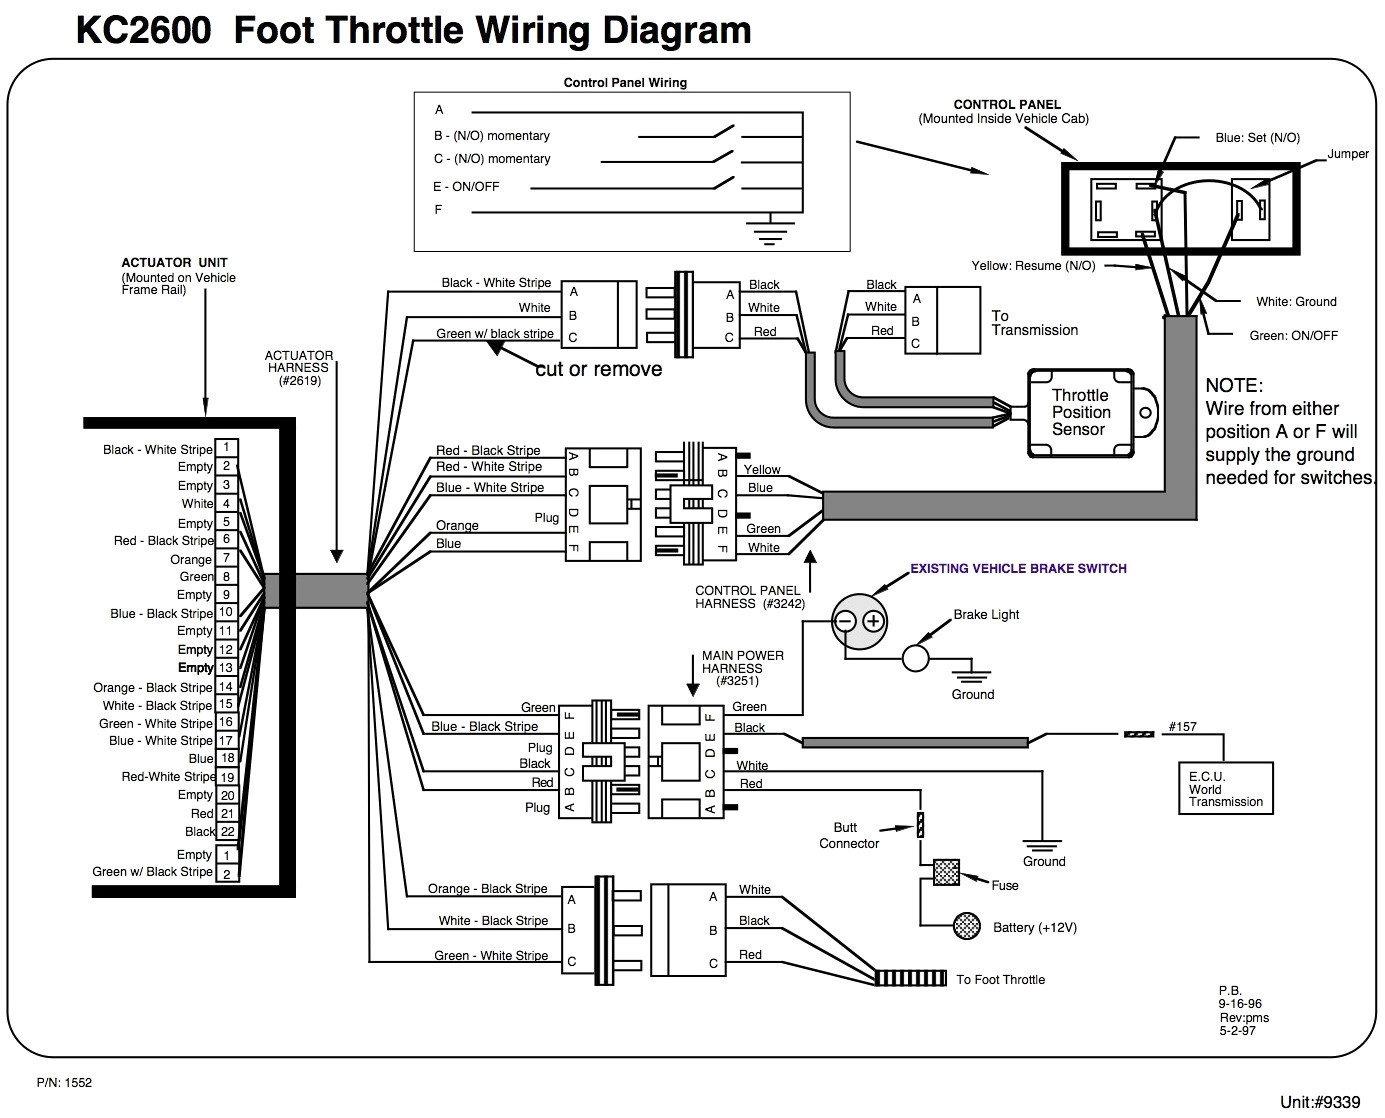 Allison Gen 4 Wiring Diagrams - All Wiring Diagram